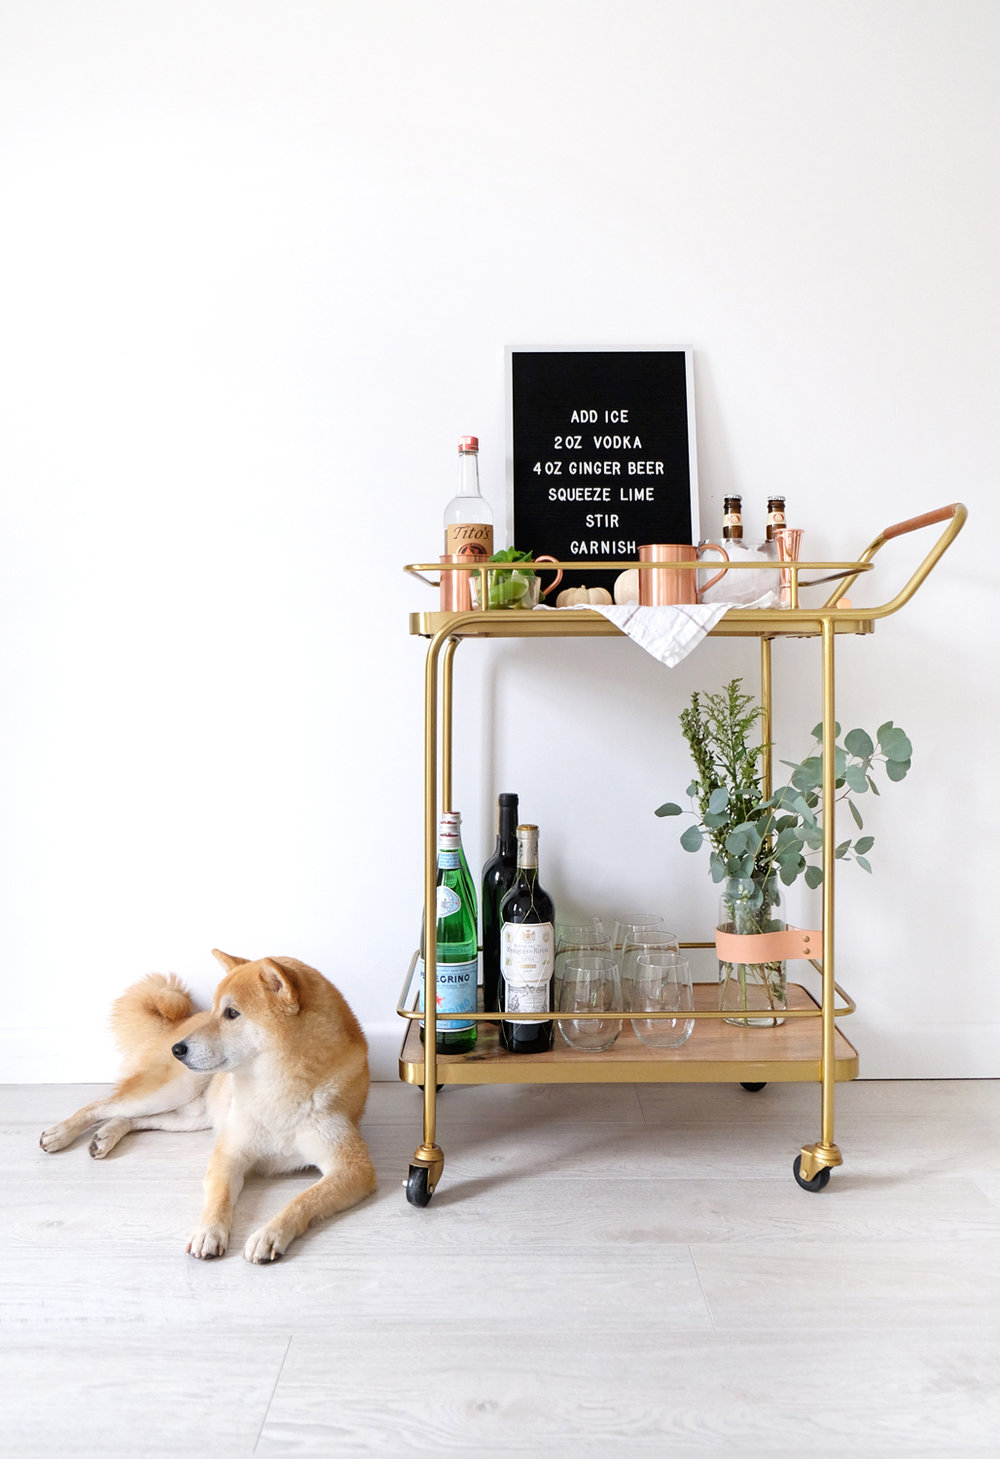 Copper Mugs ,  Glass Vase : Rove Concepts  |   Bar Cart : Target  |   Bar Tools : West Elm  |   Letter Board : Three Potato Four